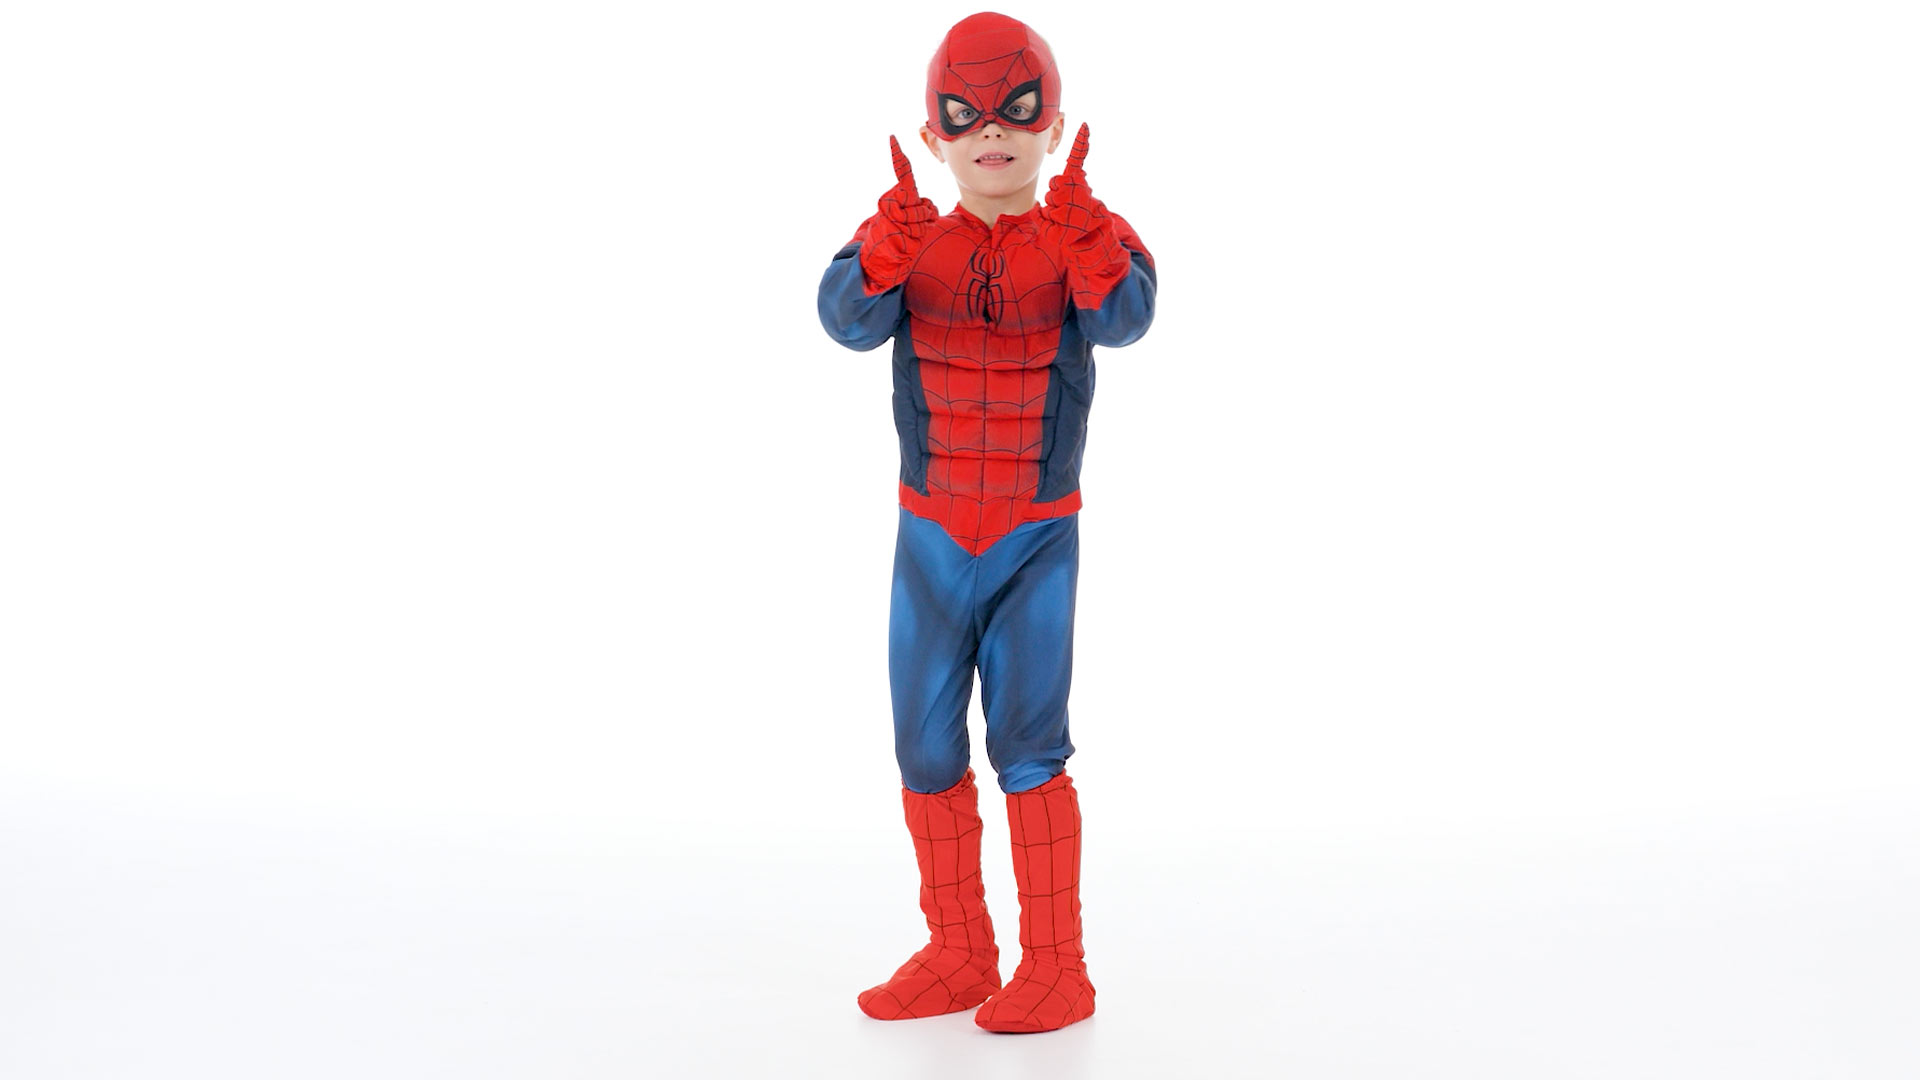 Marvel Toddler Spider-Man Costume